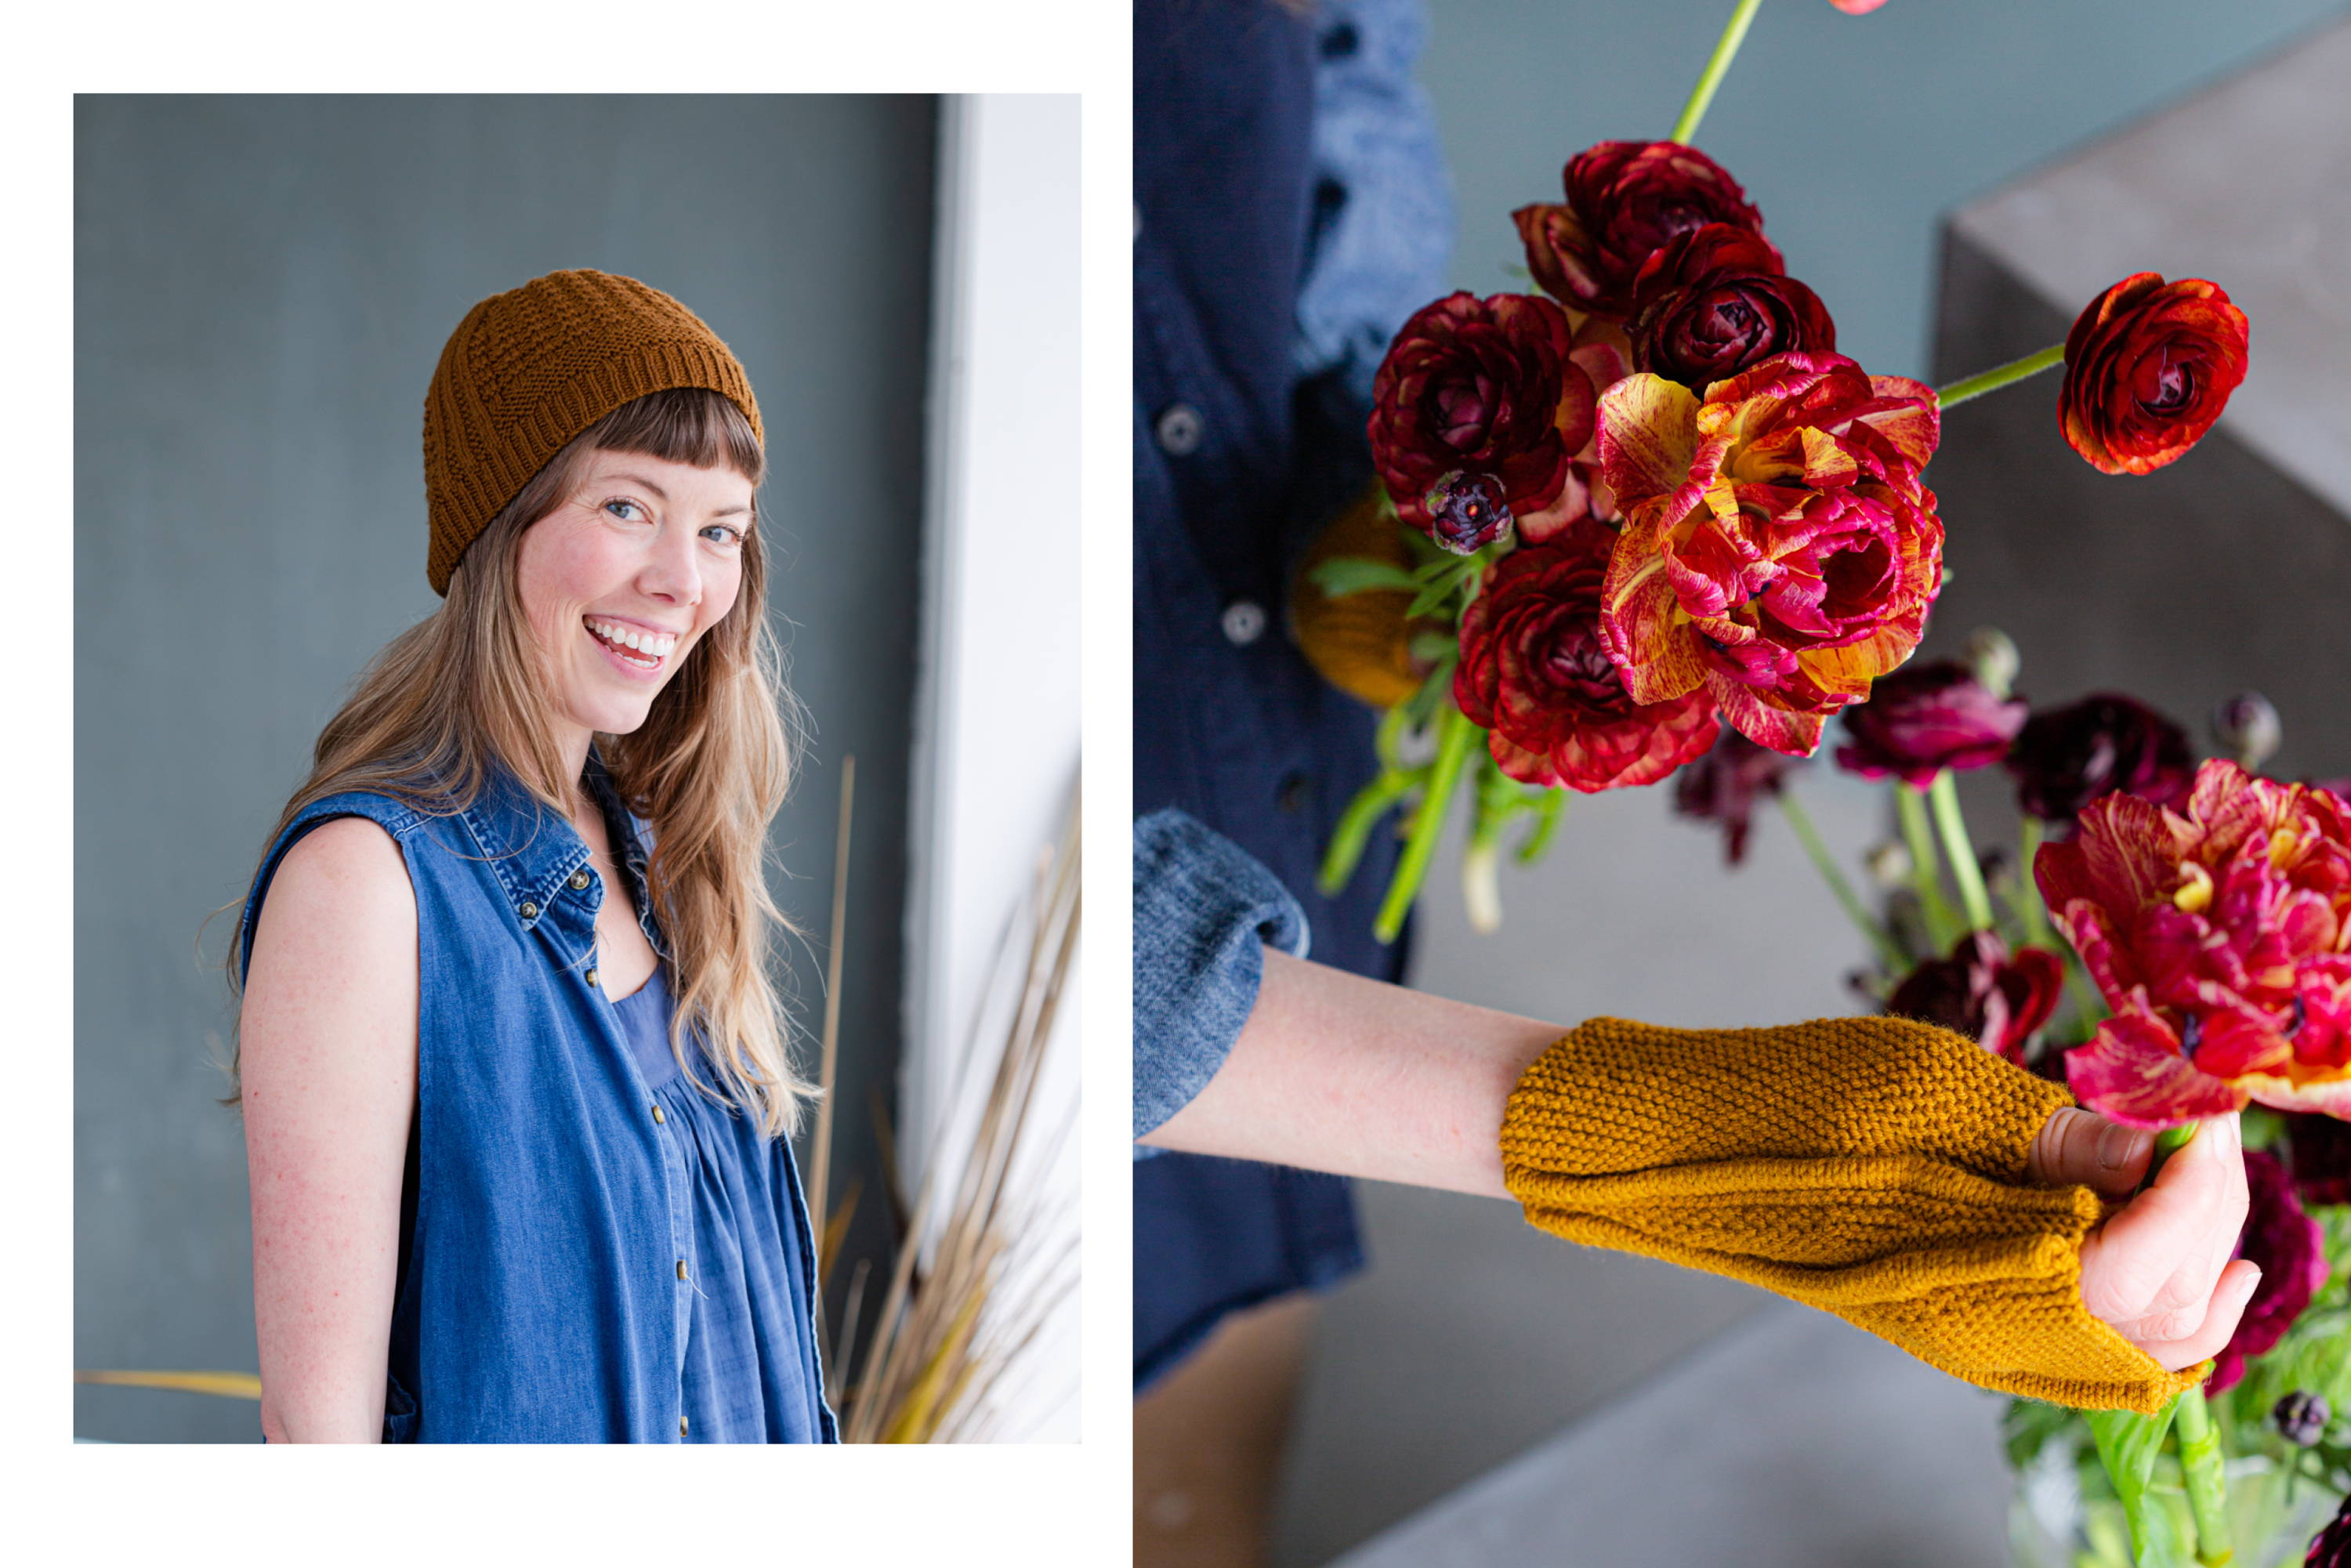 Image of Alyssa modeling Gault hat left, Alyssa modeling Limn while arranging flowers right